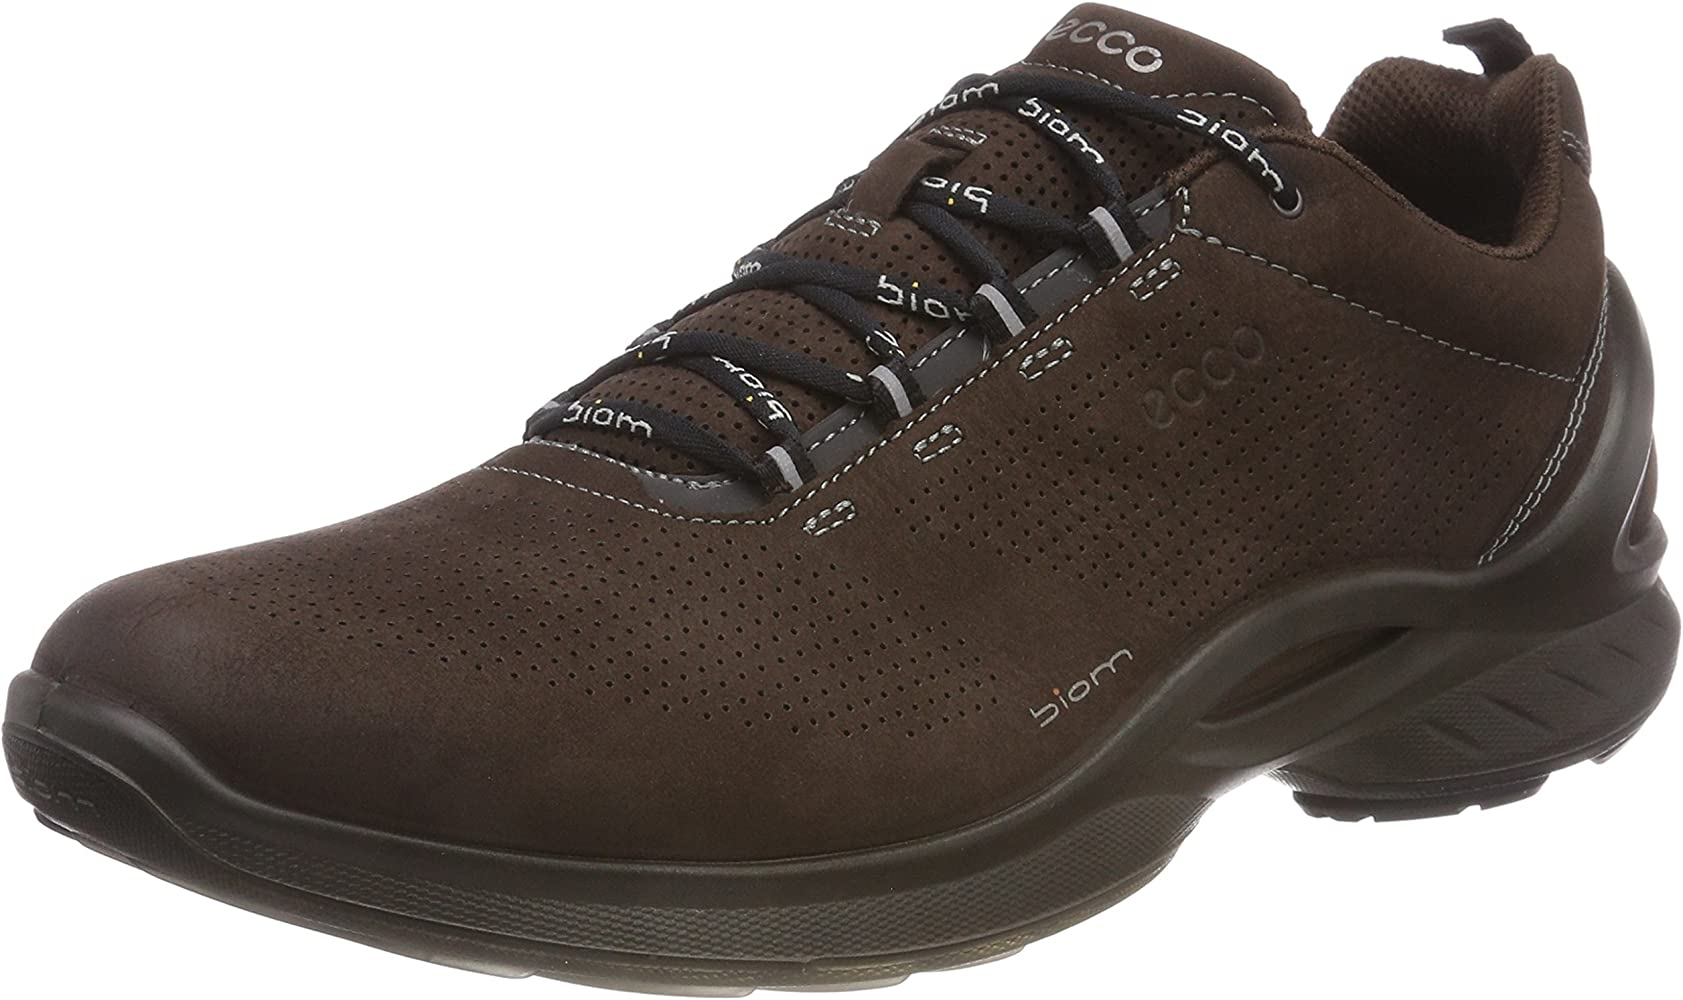 ECCO Men's Biom Fjuel Lace Up Sneakers | Dillard's